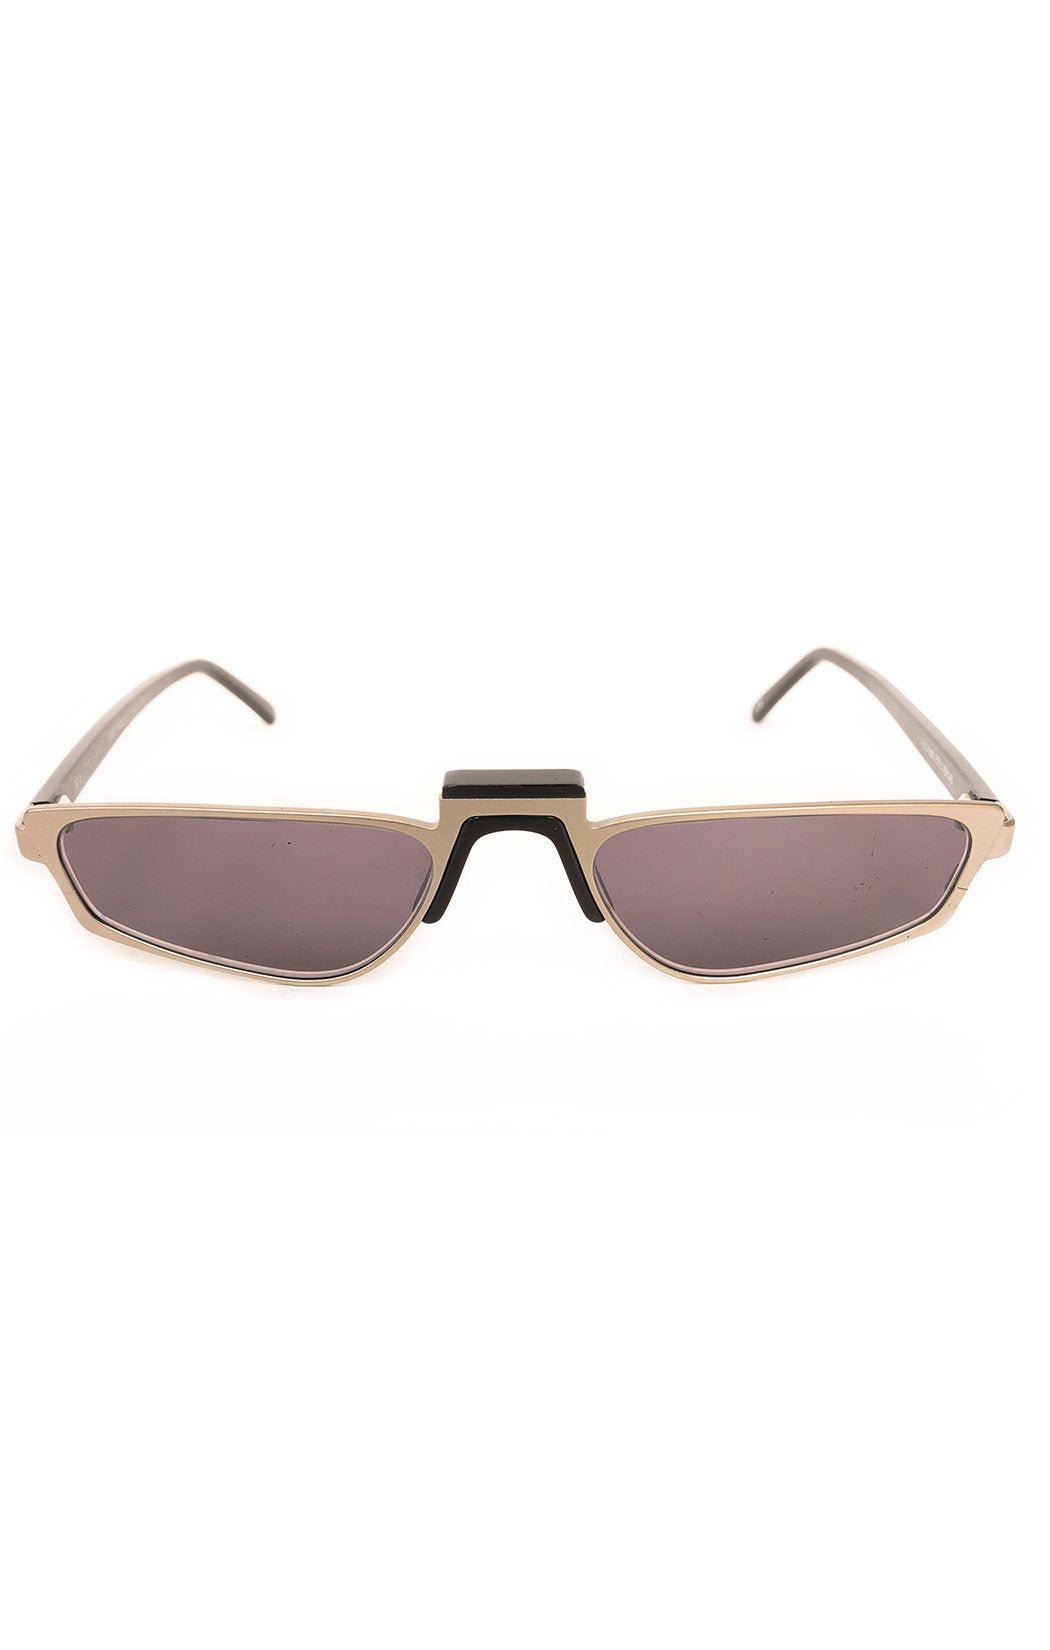 "Front view of WHITE HEAT Sunglasses  Size: 5.25"" W x 1"" H"